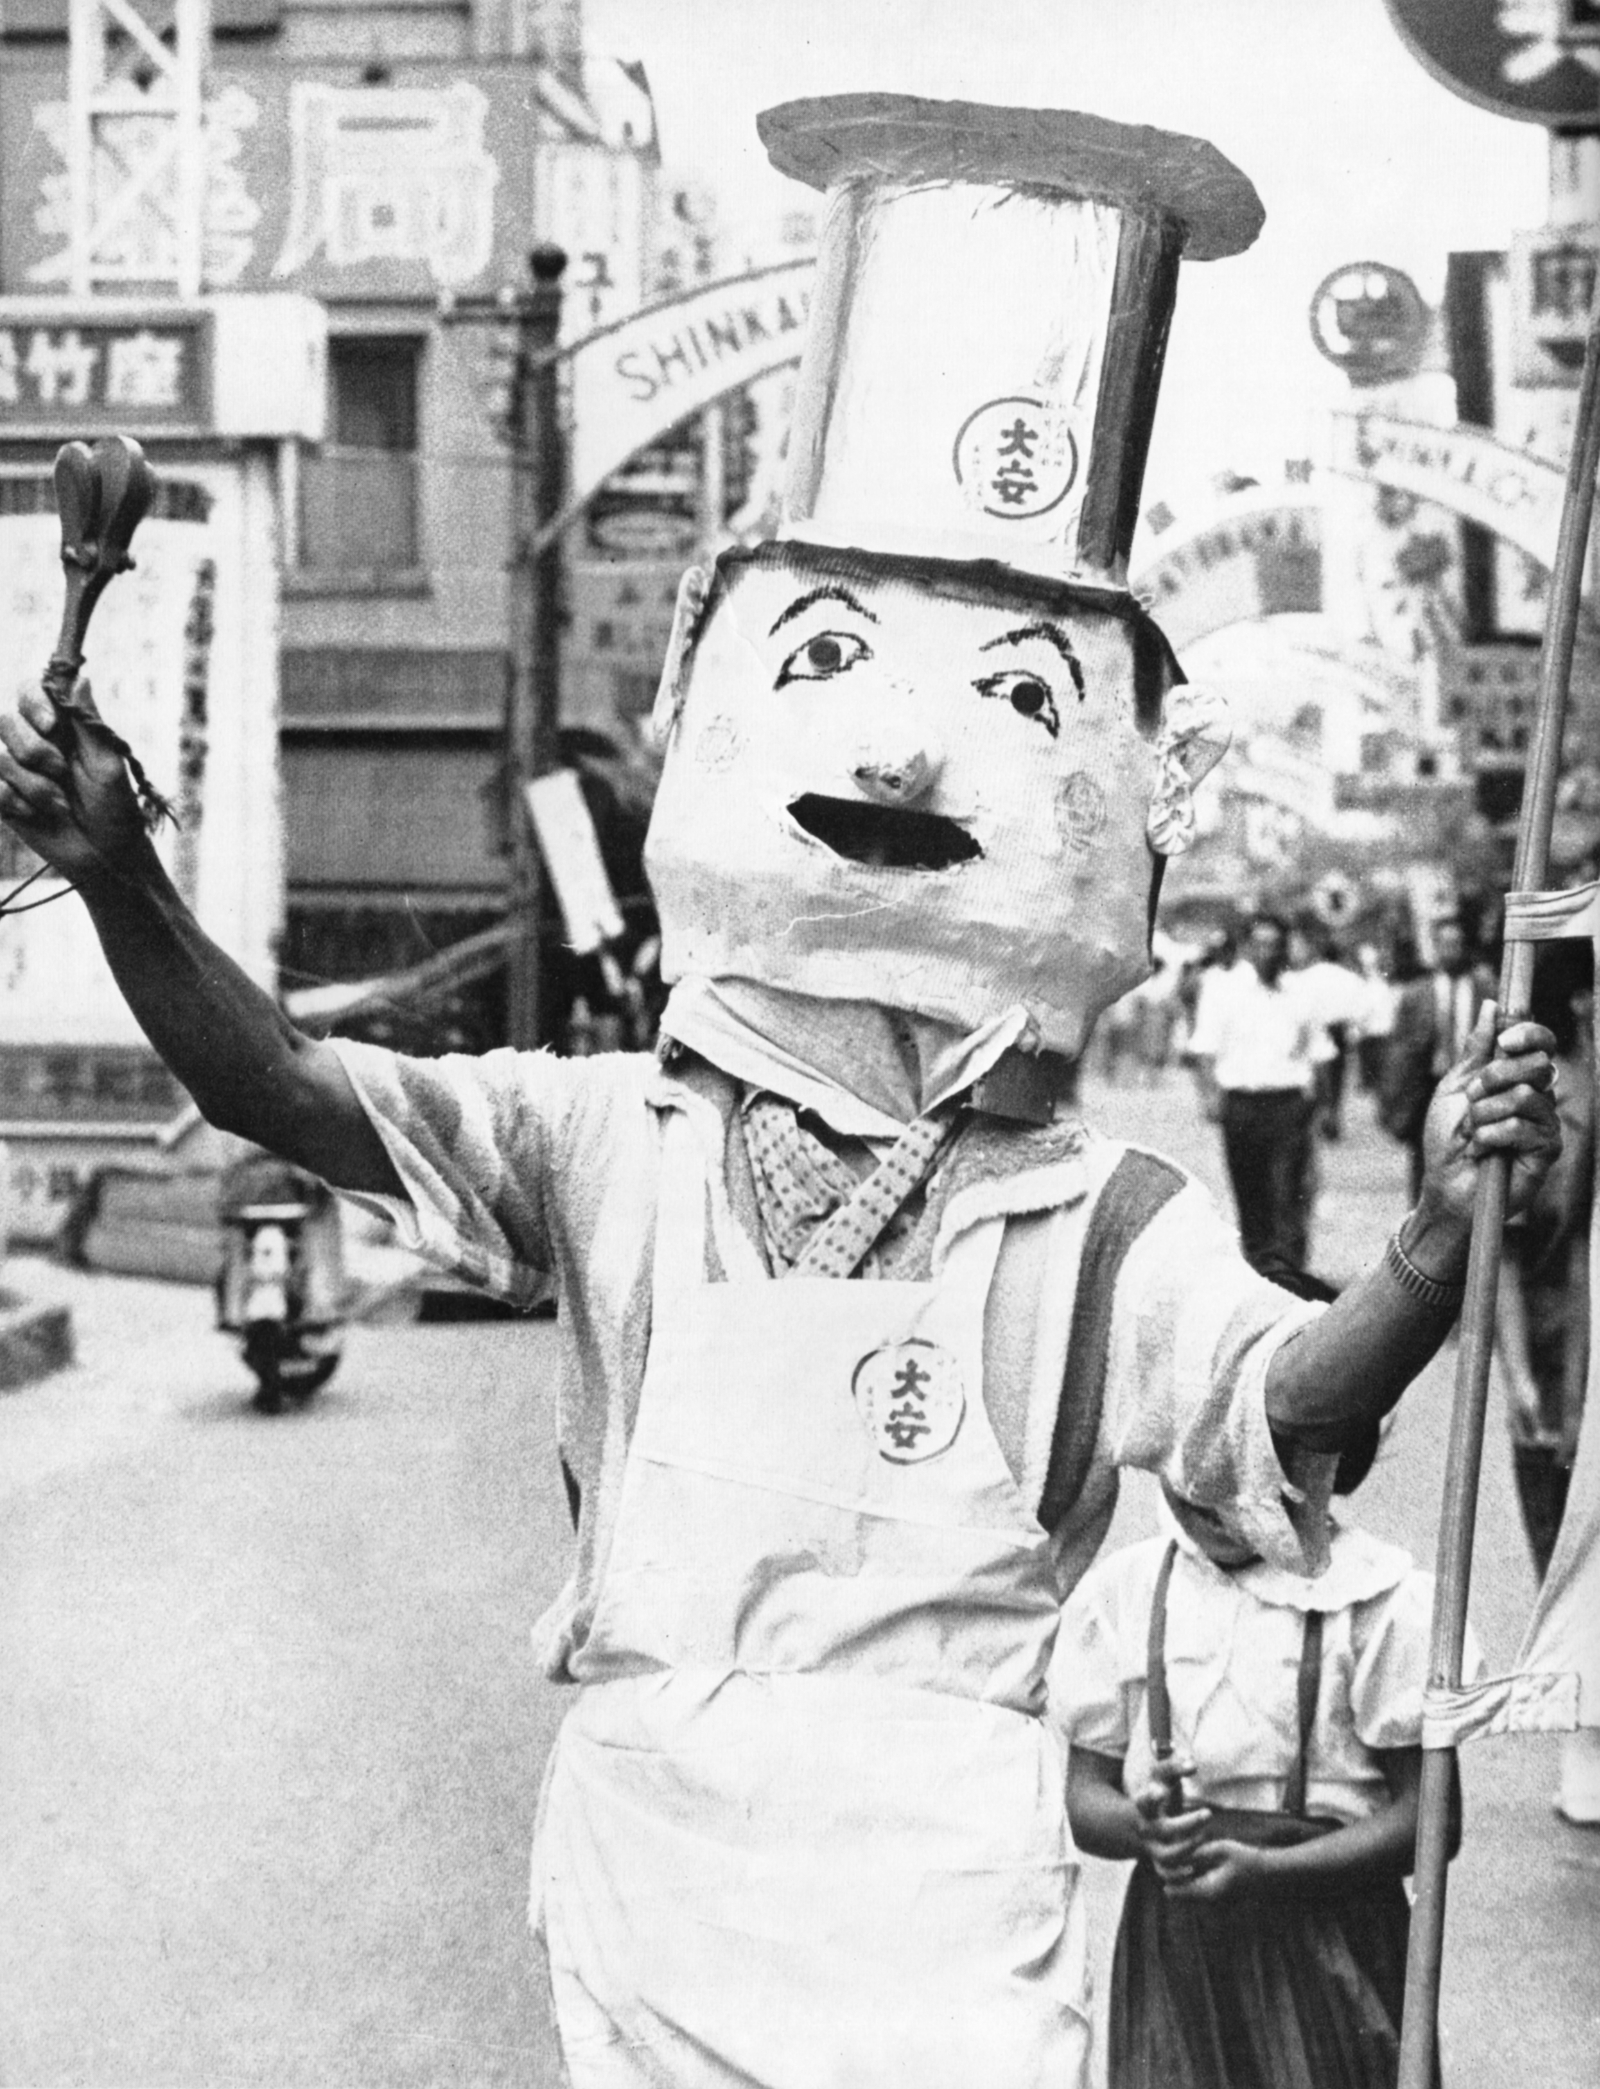 A man dressed as a mascot